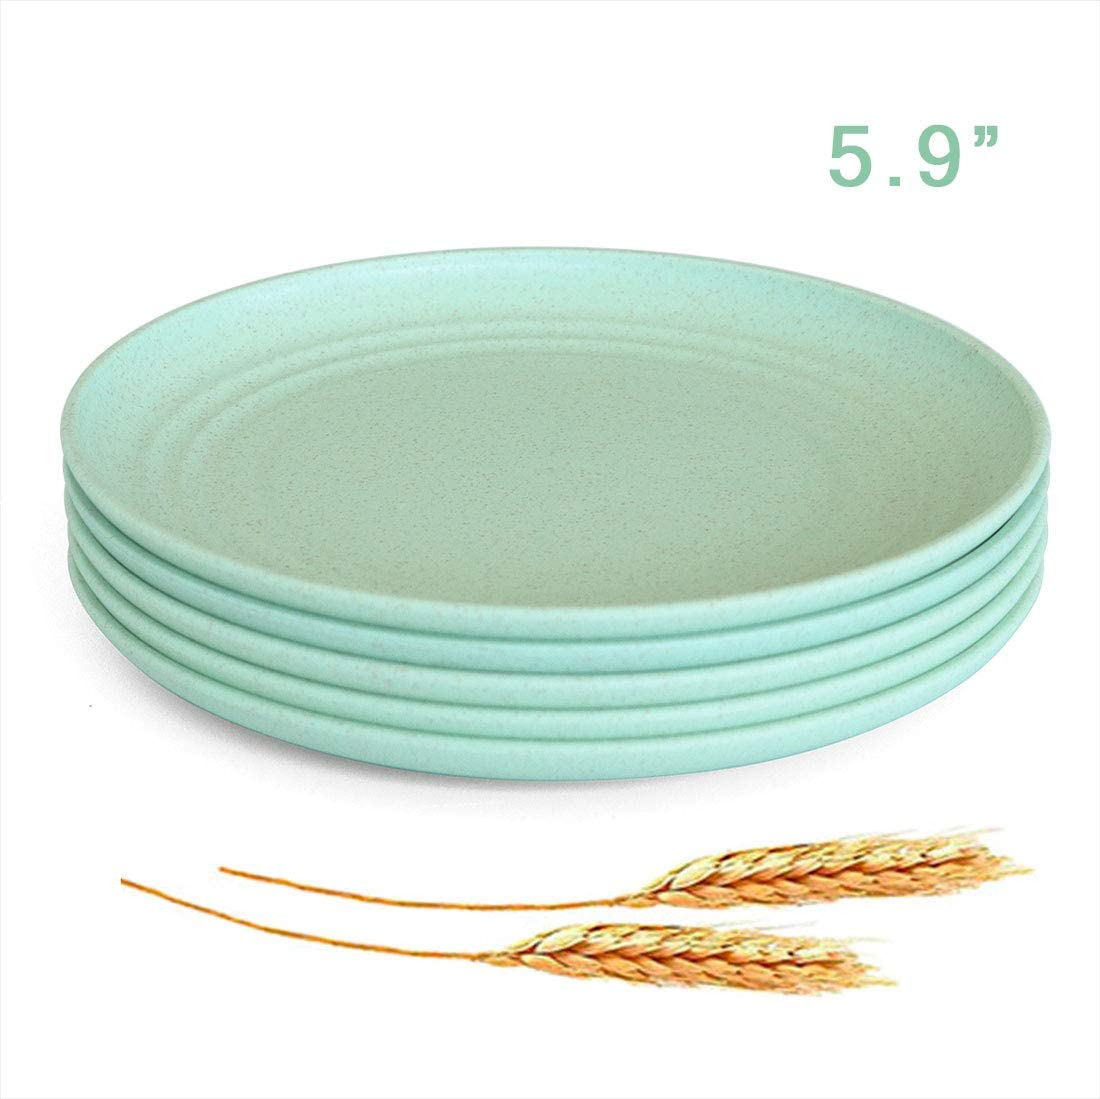 "Microwave Safe Wheat Straw Plates - 5 Pack 5.9"" Unbreakable Dessert Dish Sets, Small Plates for Kids,Children,Toddler, Lightweight & Degradable BPA free Dishwasher Safe Plates for Fruit Snack Containe"